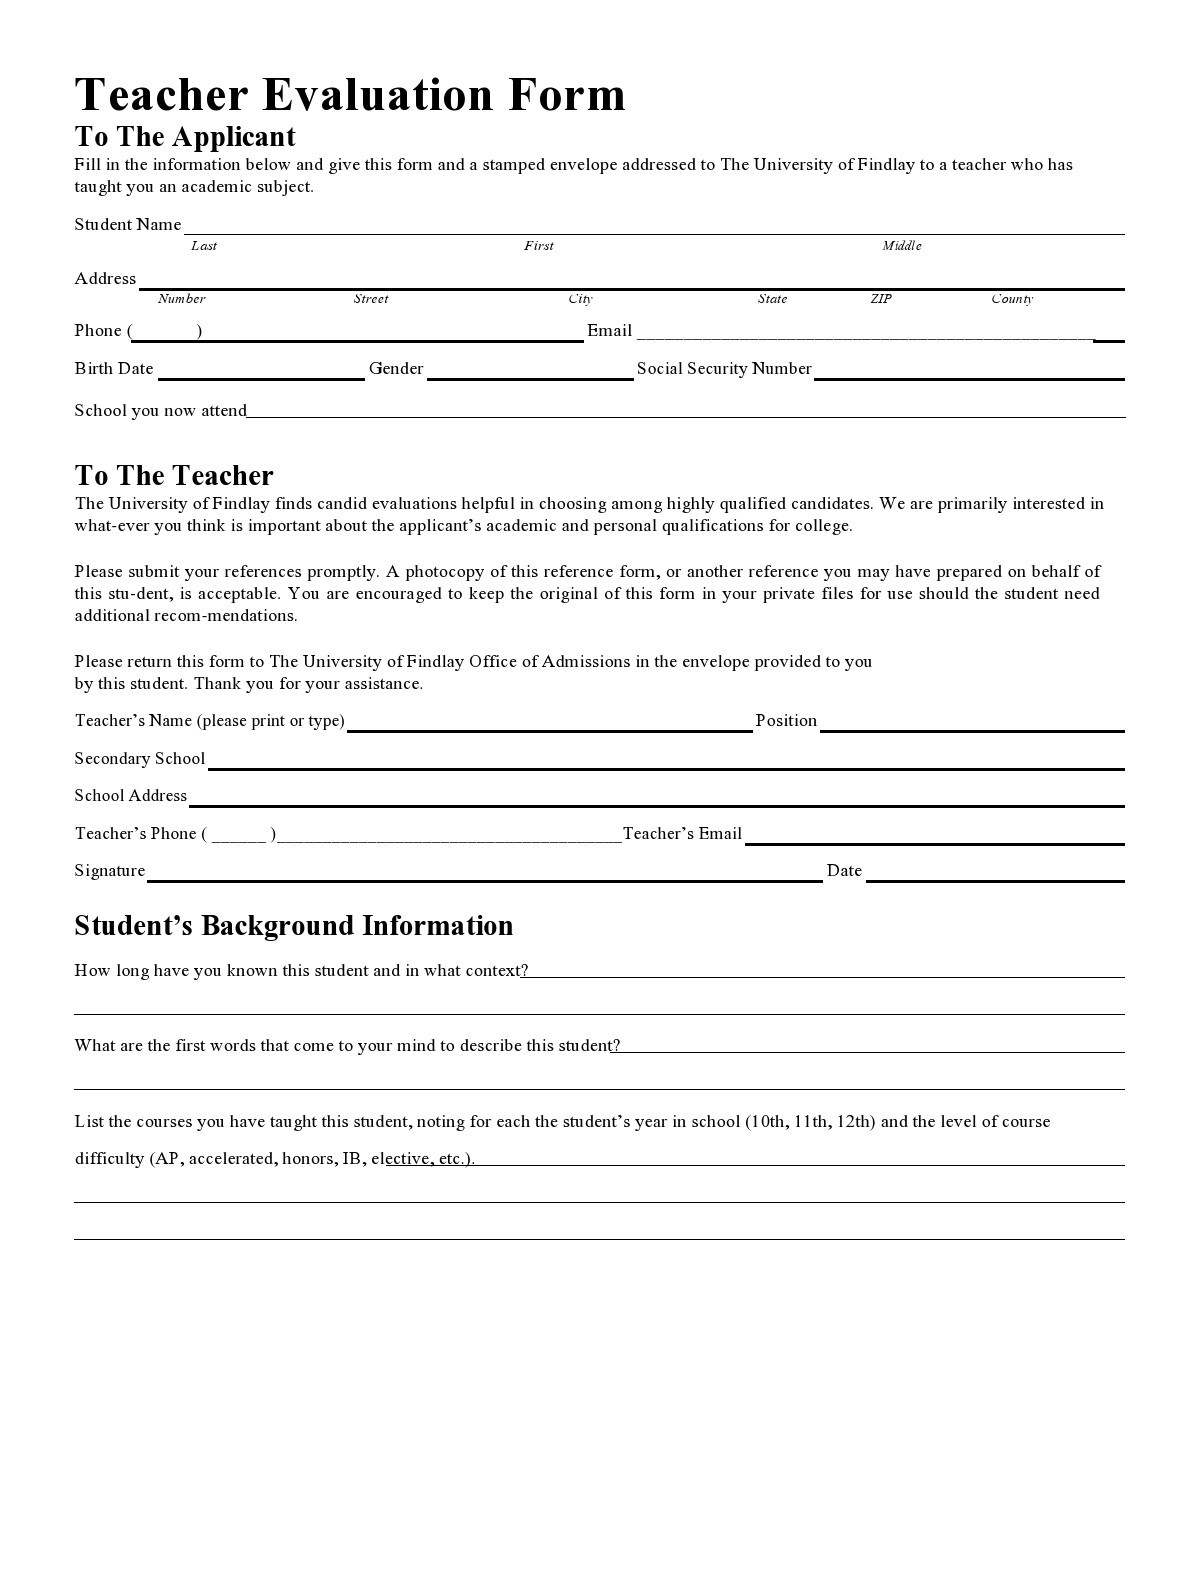 Free teacher evaluation form 09